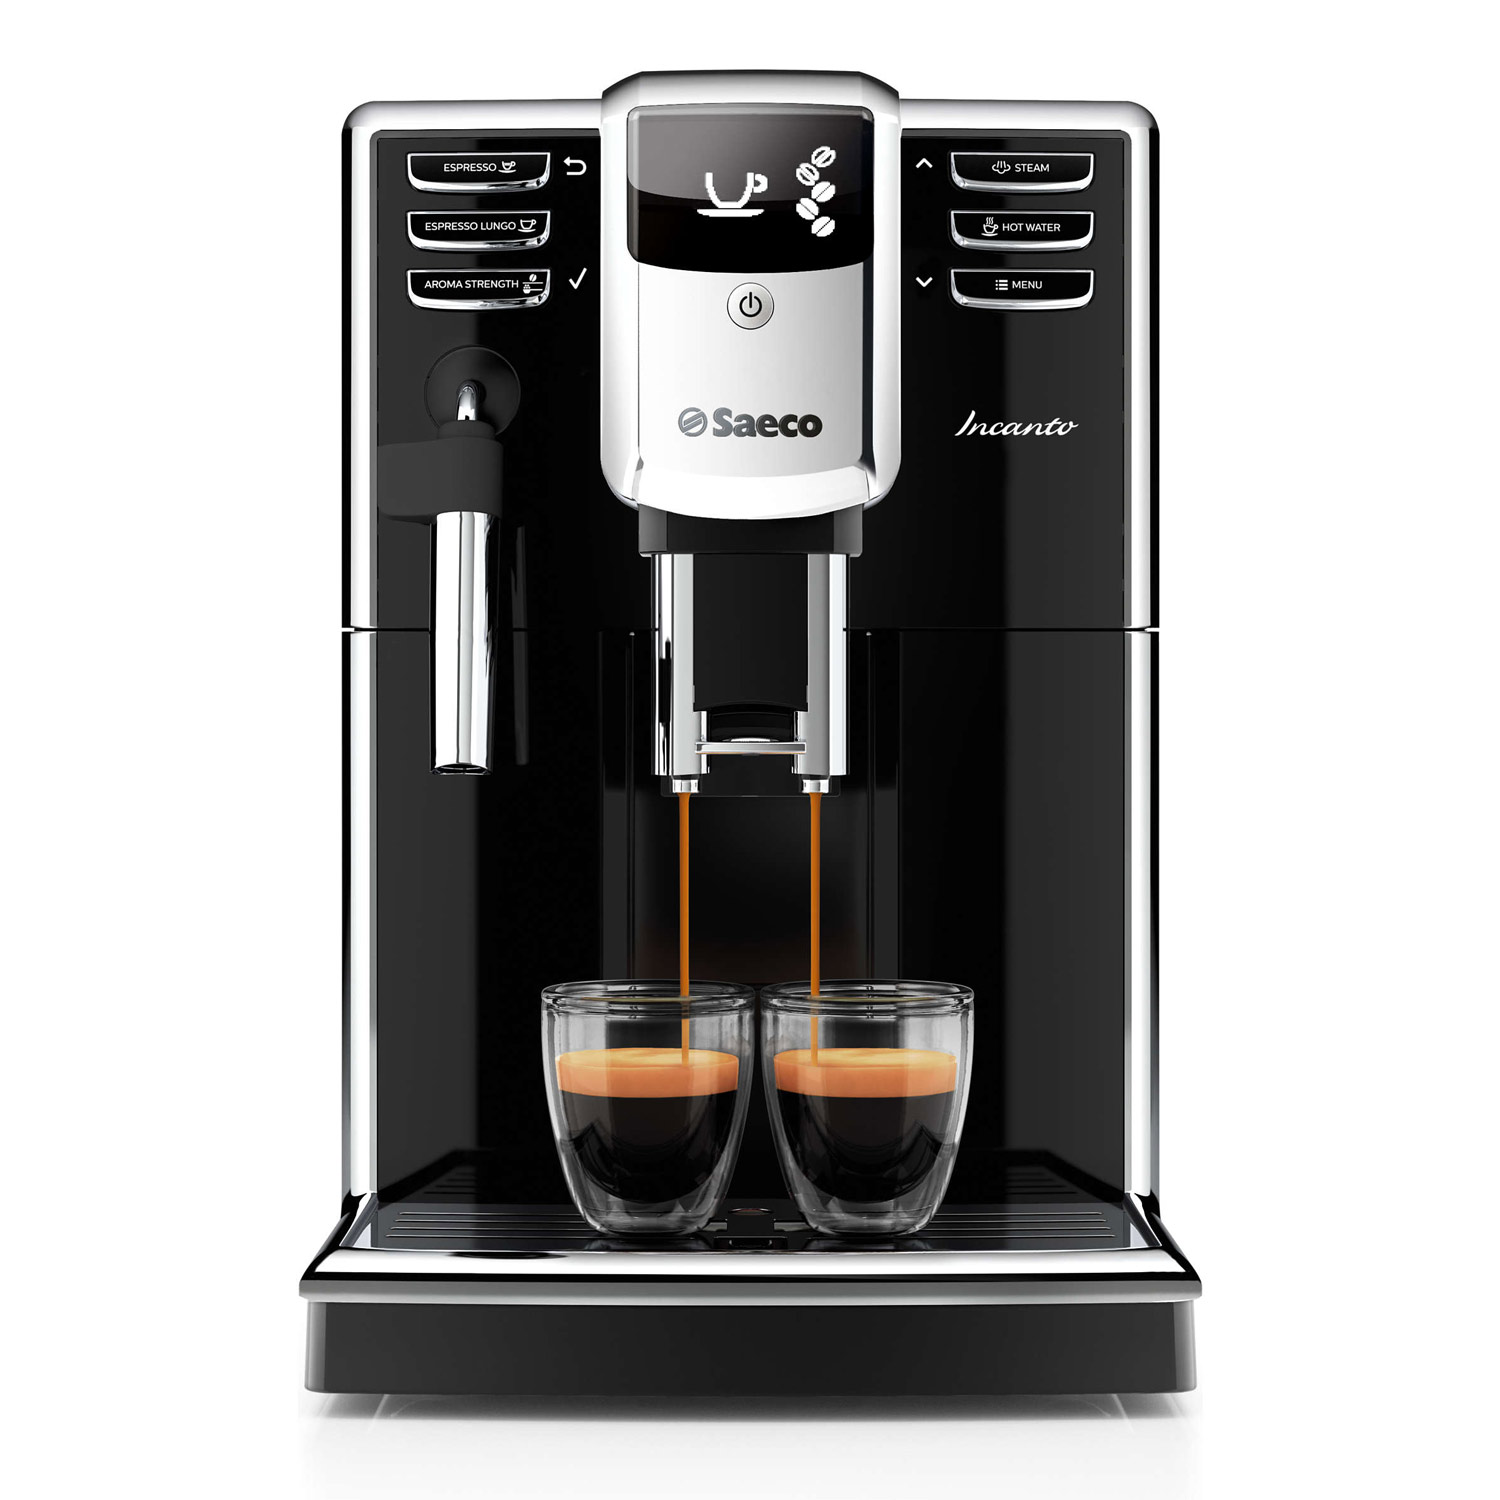 Saeco Incanto Black Superautomatic Espresso Machine - HD8911/48